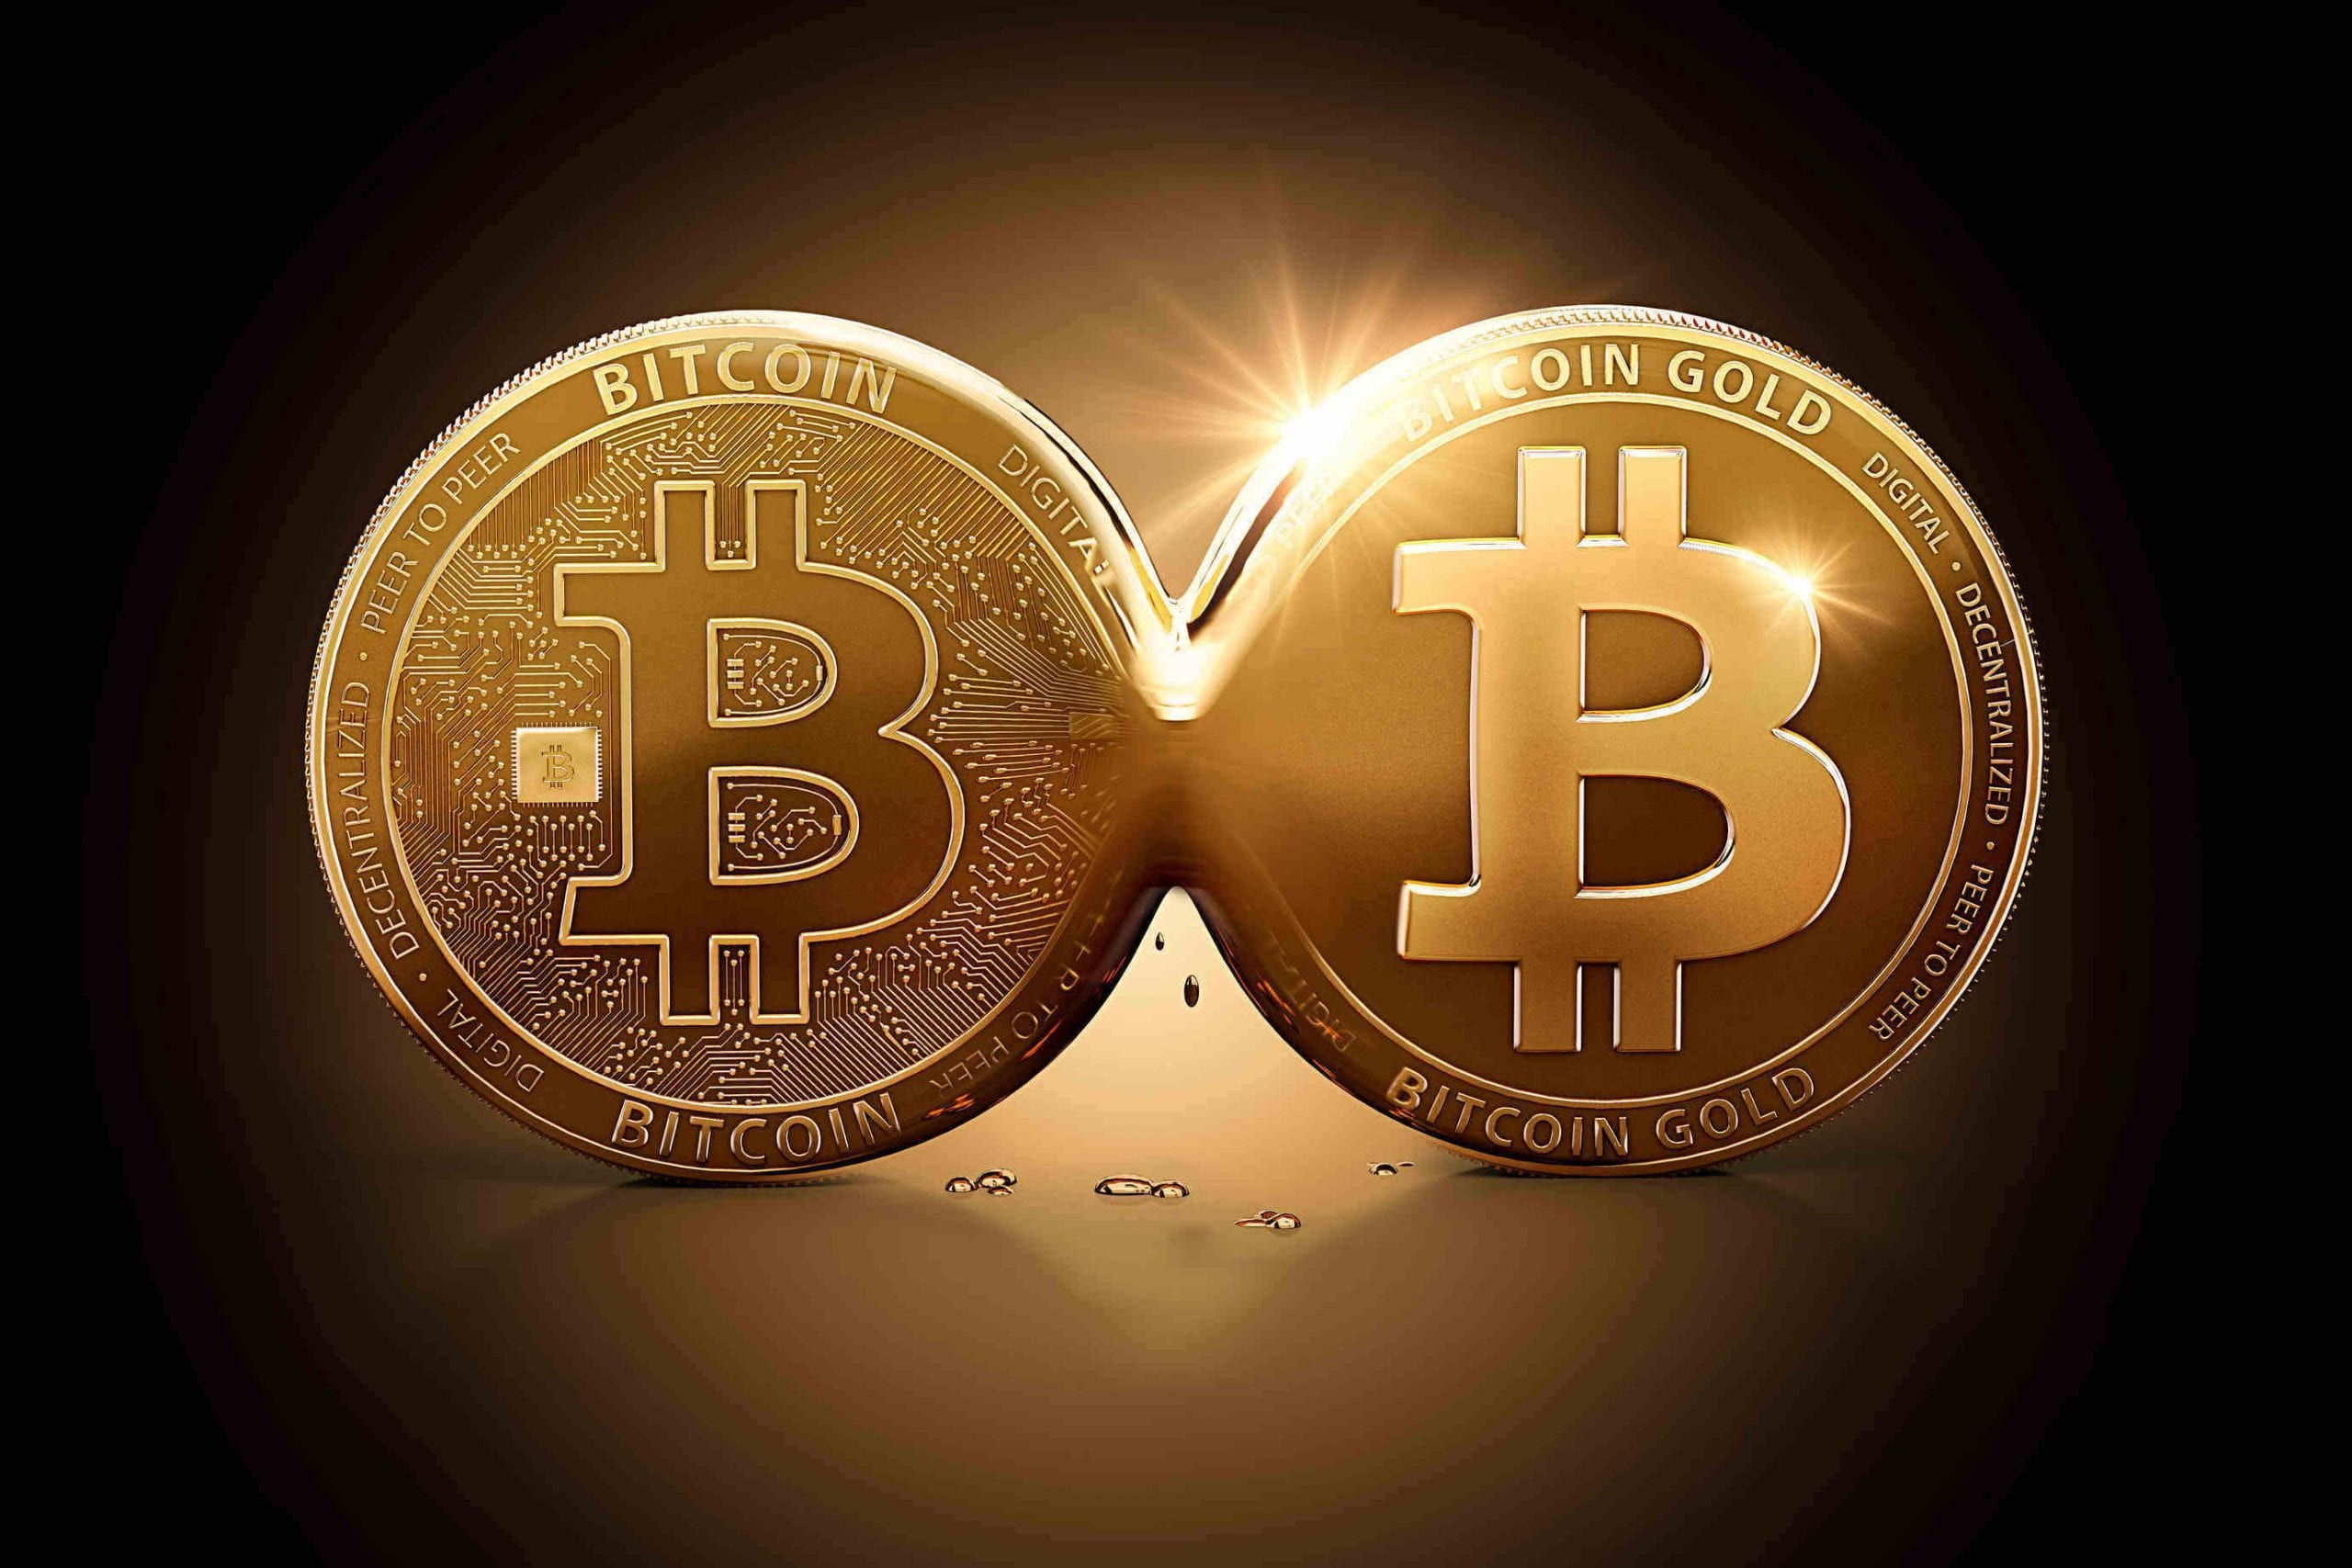 Bitcoin Gold emerging out of Bitcoin as a result of Hard Fork. Bitcoin splitting into two currencies.